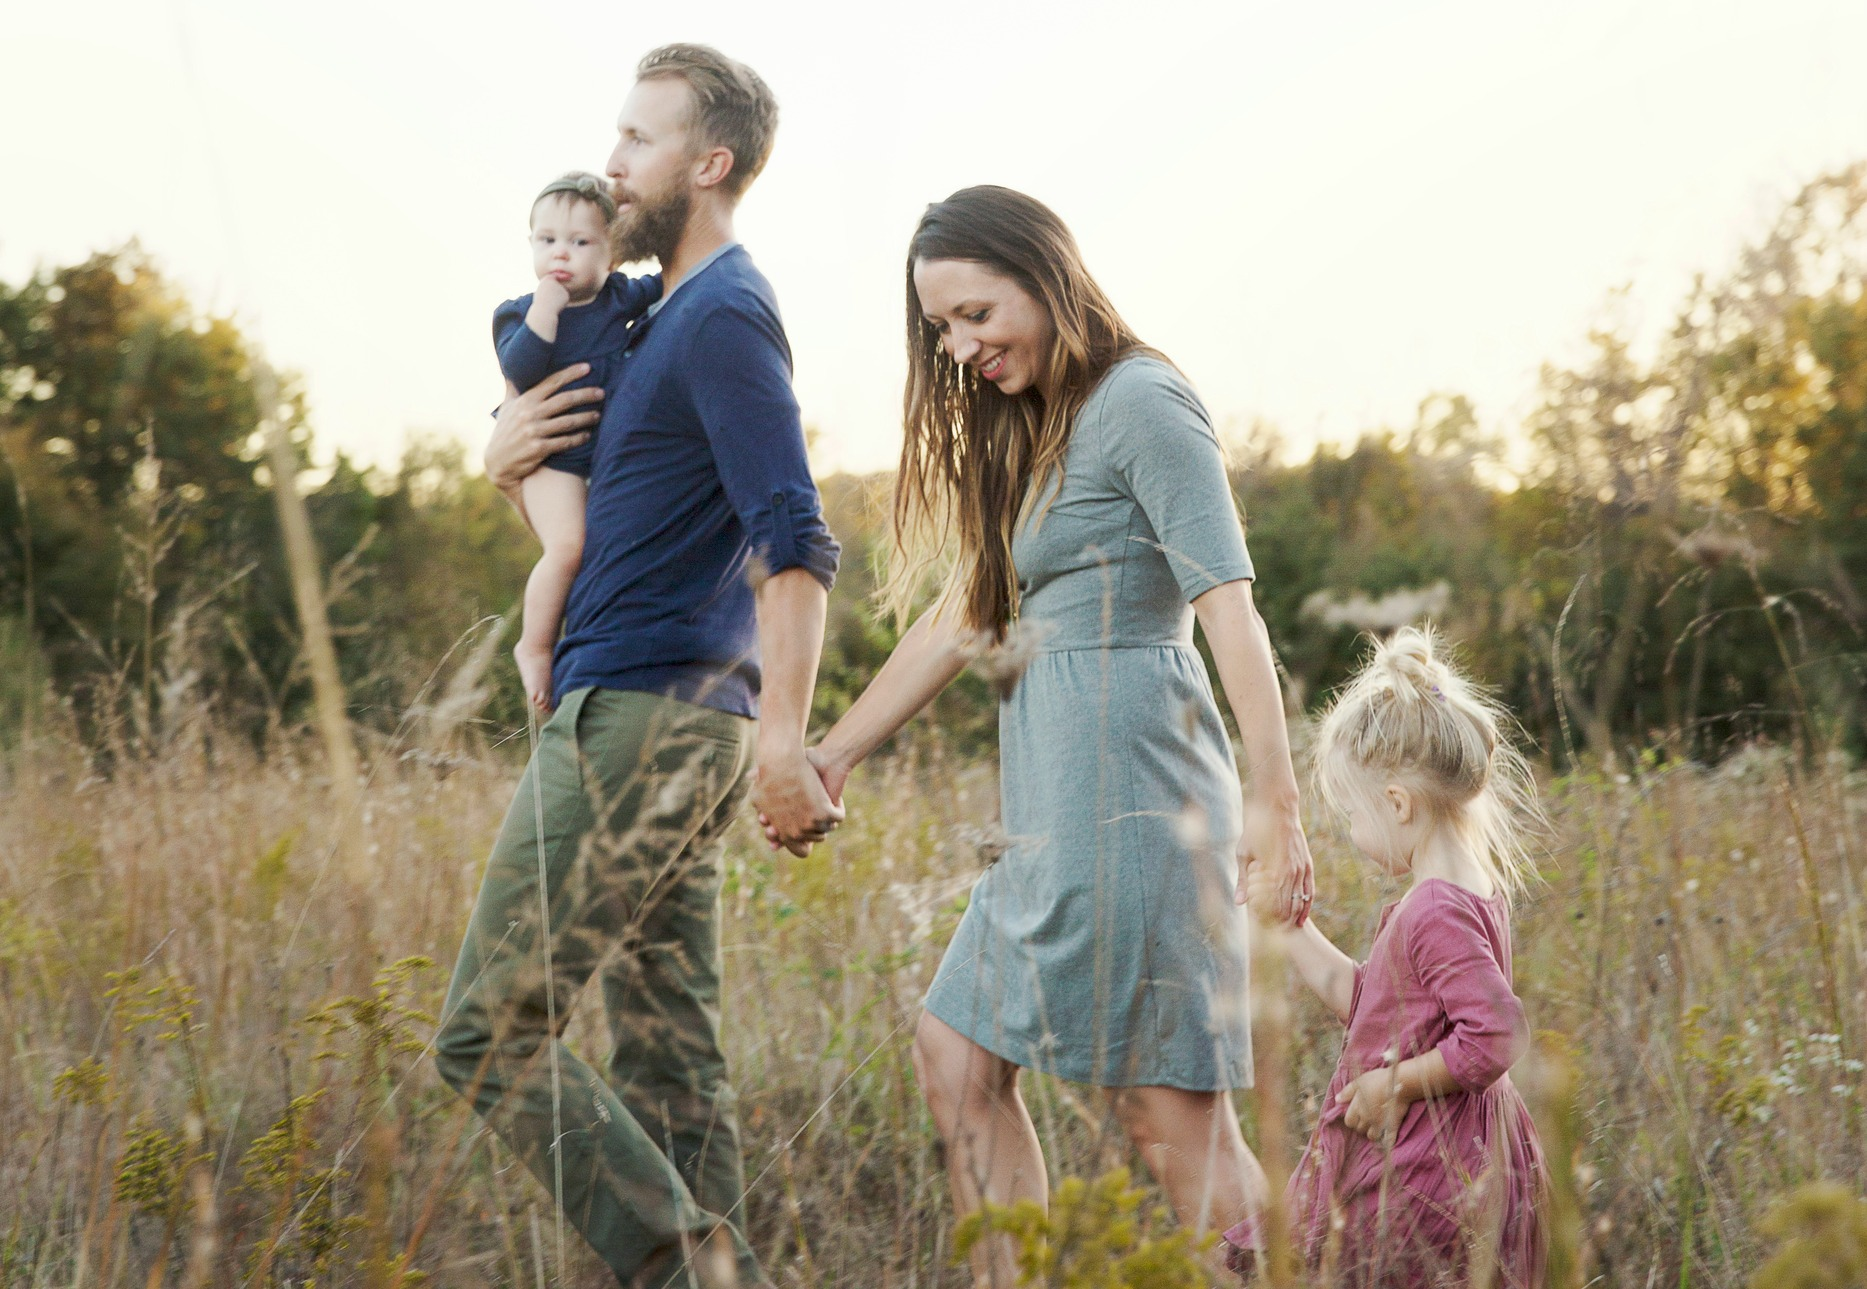 How You Can Communicate Value to Your Family